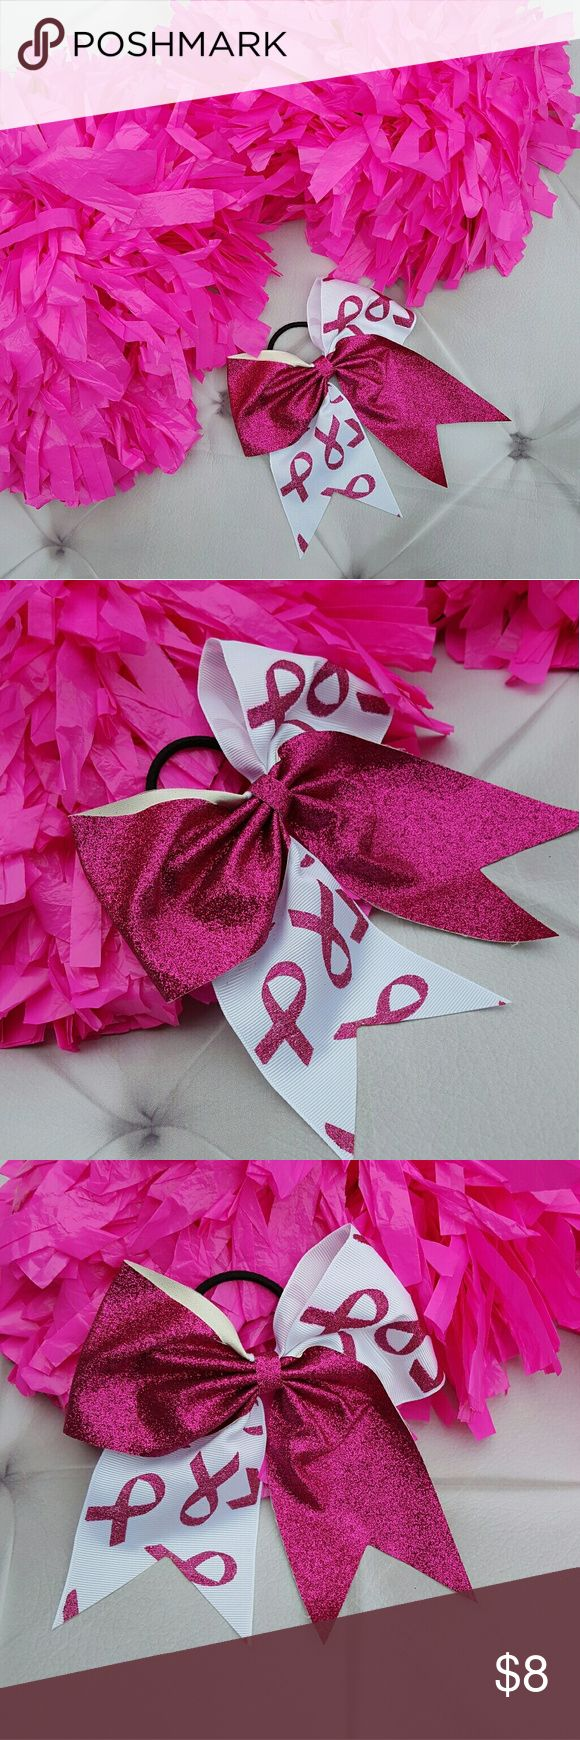 "Glitter Pink Breast Cancer Awareness Cheer Bow Think pink !Glittered new breast cancer awareness symbol print large cheer hairbow. On   black elastic ponytail holder. New never worn.  Measurements : 8""height 6""across front  #ravenkittystyle #cheer #cheerleader #breastcancerawareness #cure #pinkribbon #glitter #bow #hairbow #cheerbow #bigbow #pink #hotpink #whiteandpink #cheeruniform #october Accessories Hair Accessories"